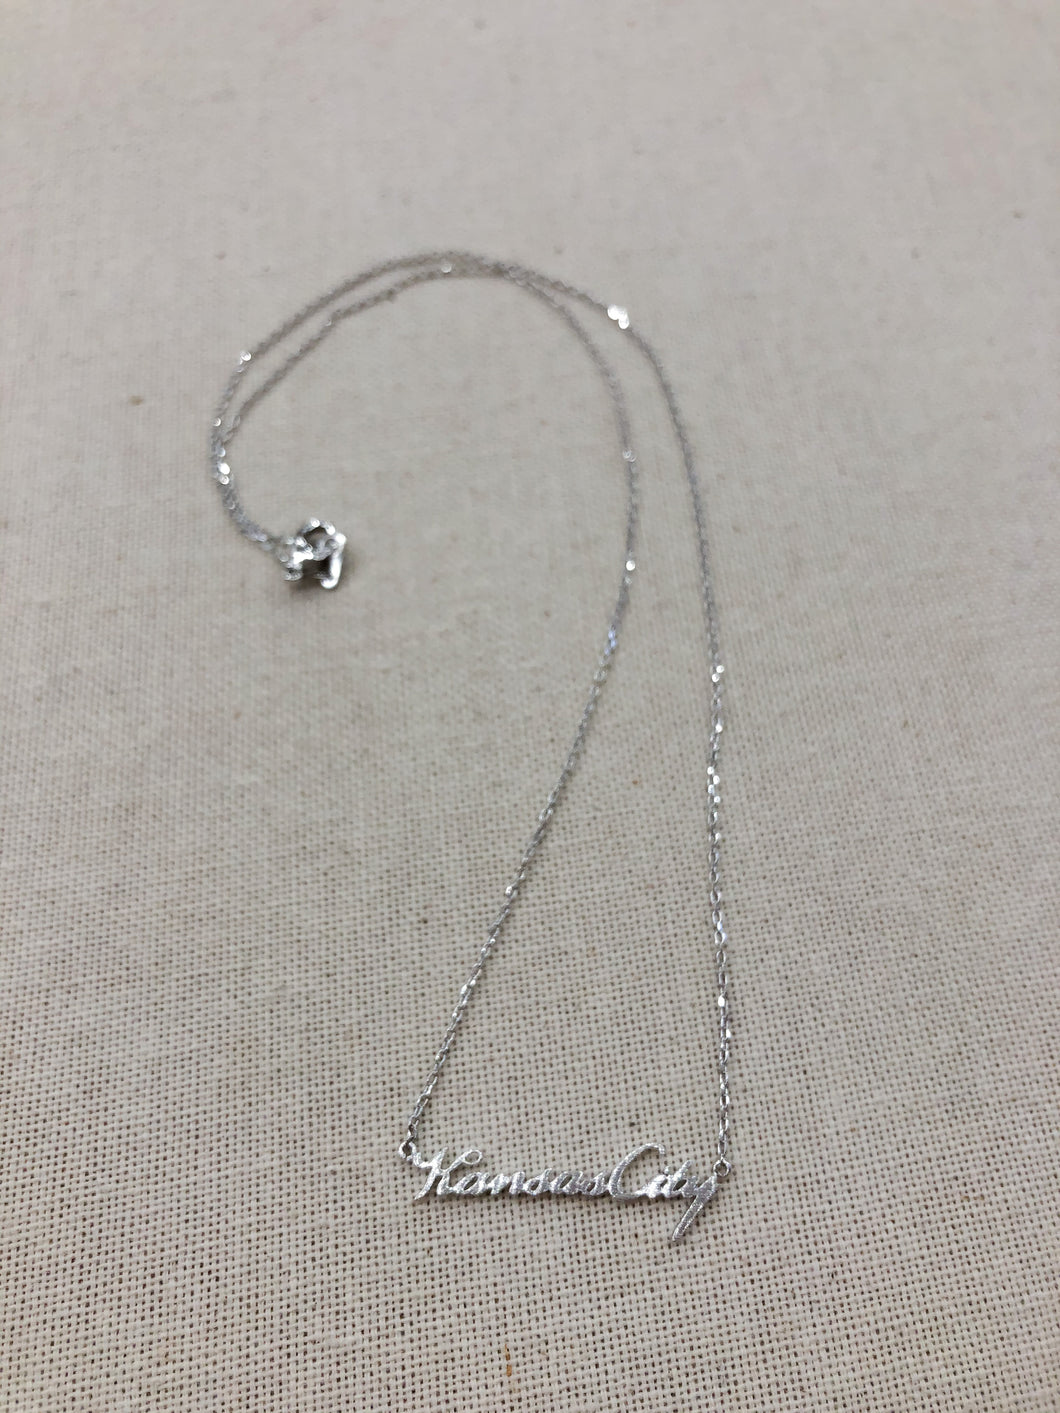 Kansas City Script Necklace in Silver